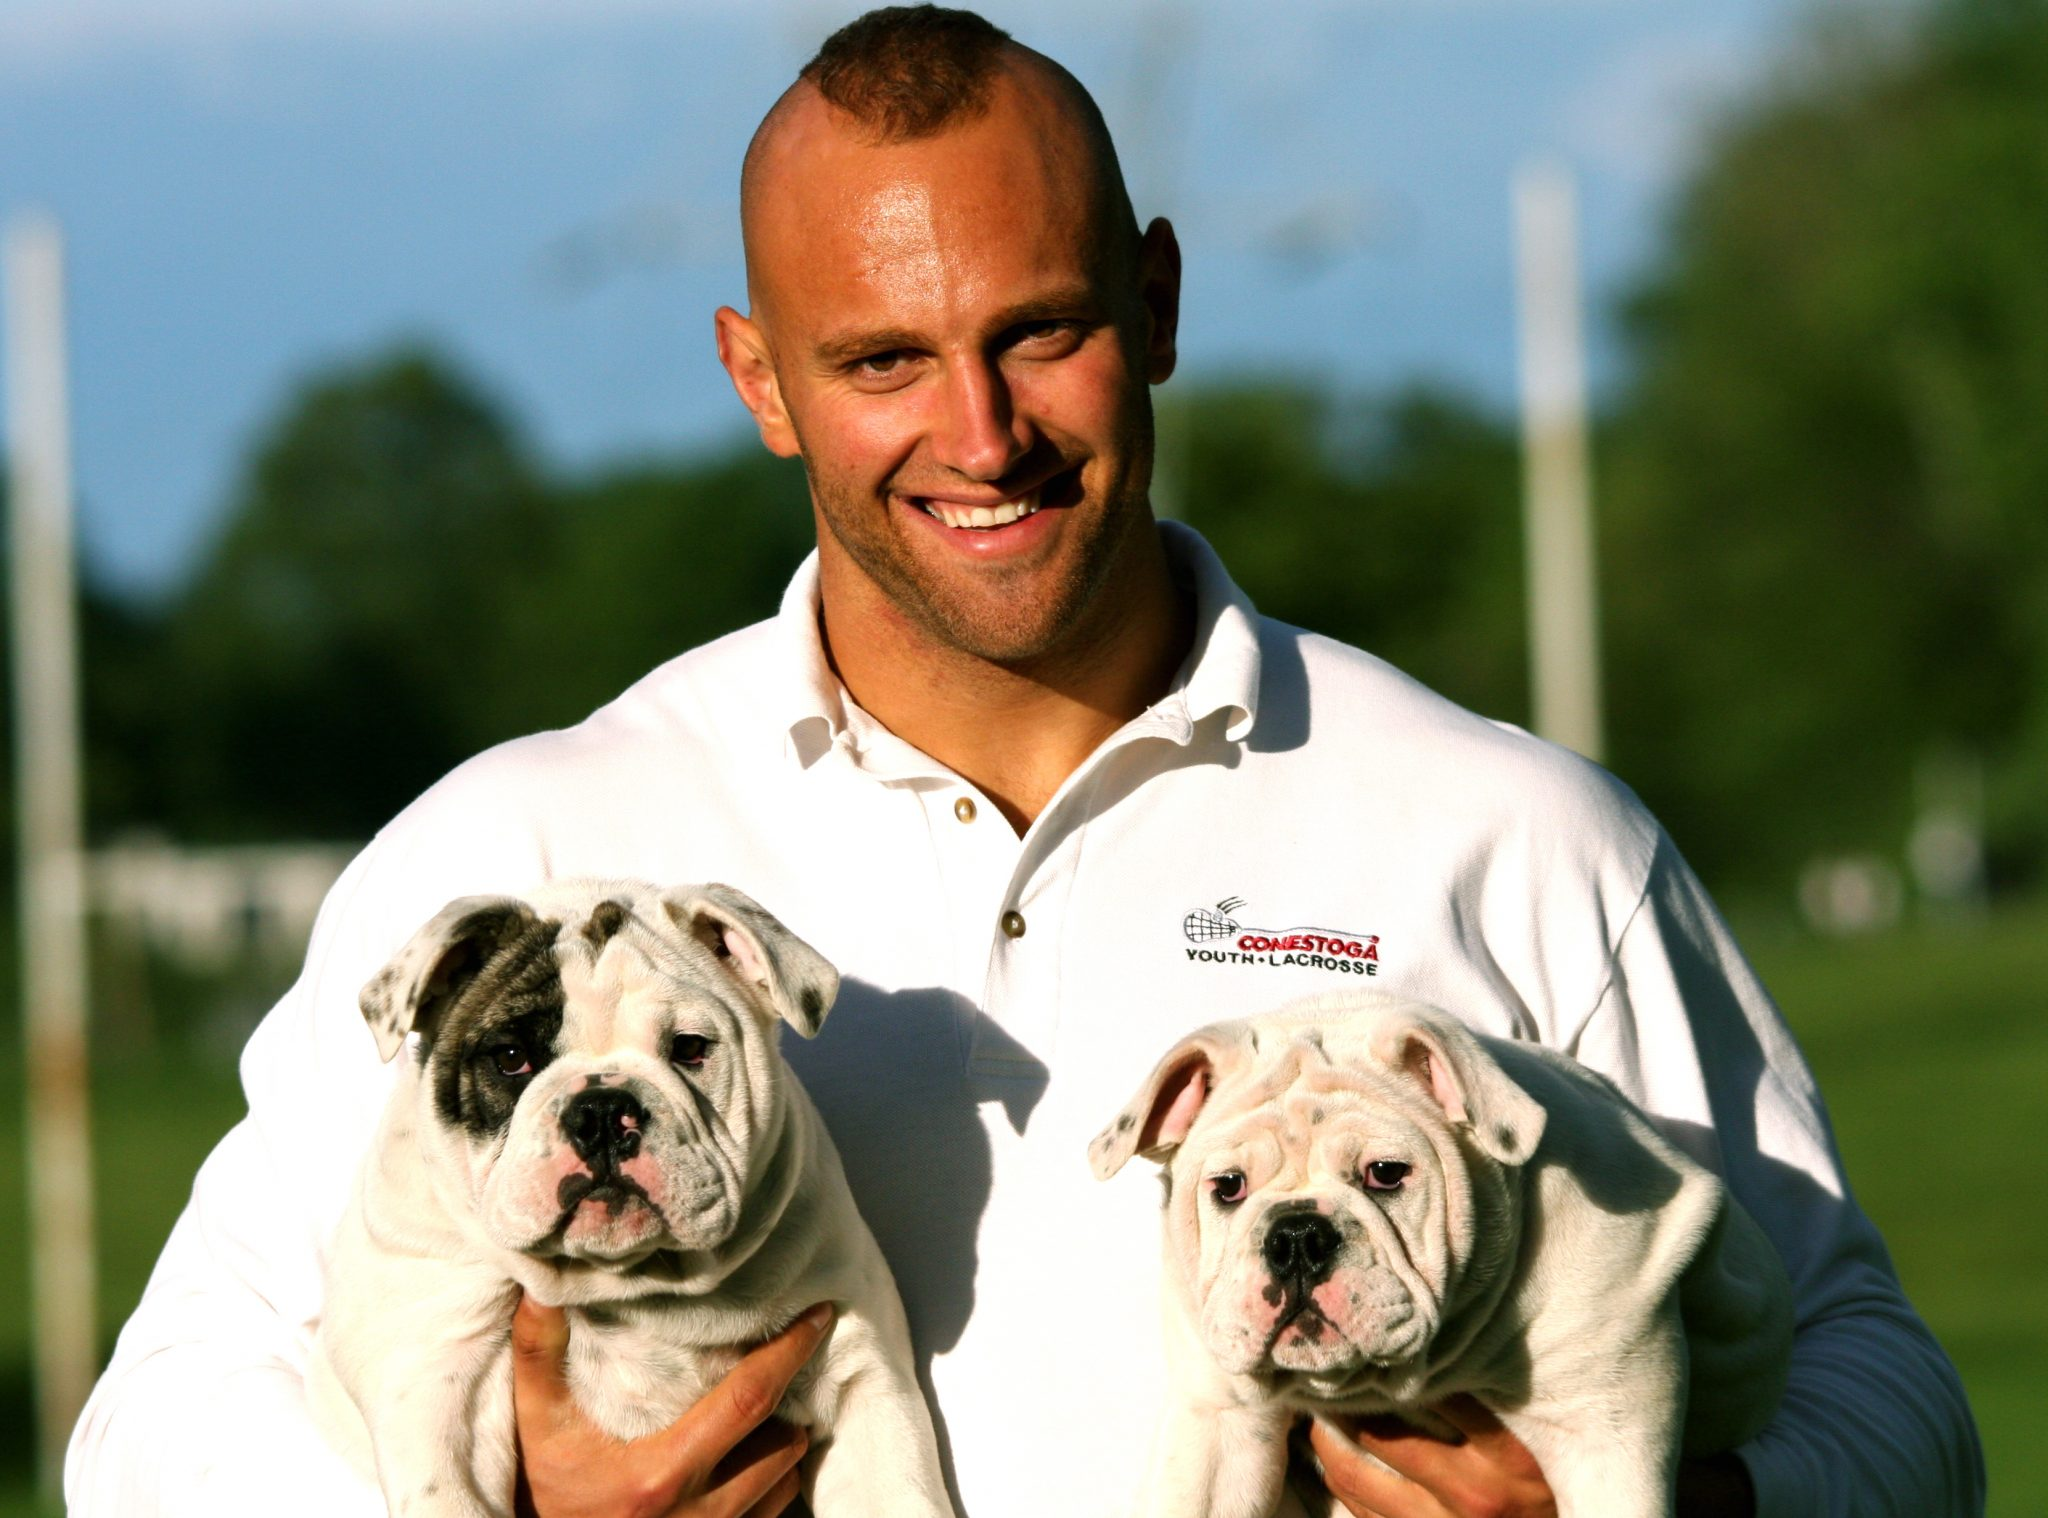 Superbowl Champion & Animal Advocate Mark Herzlich Has What It Takes – Beats Cancer